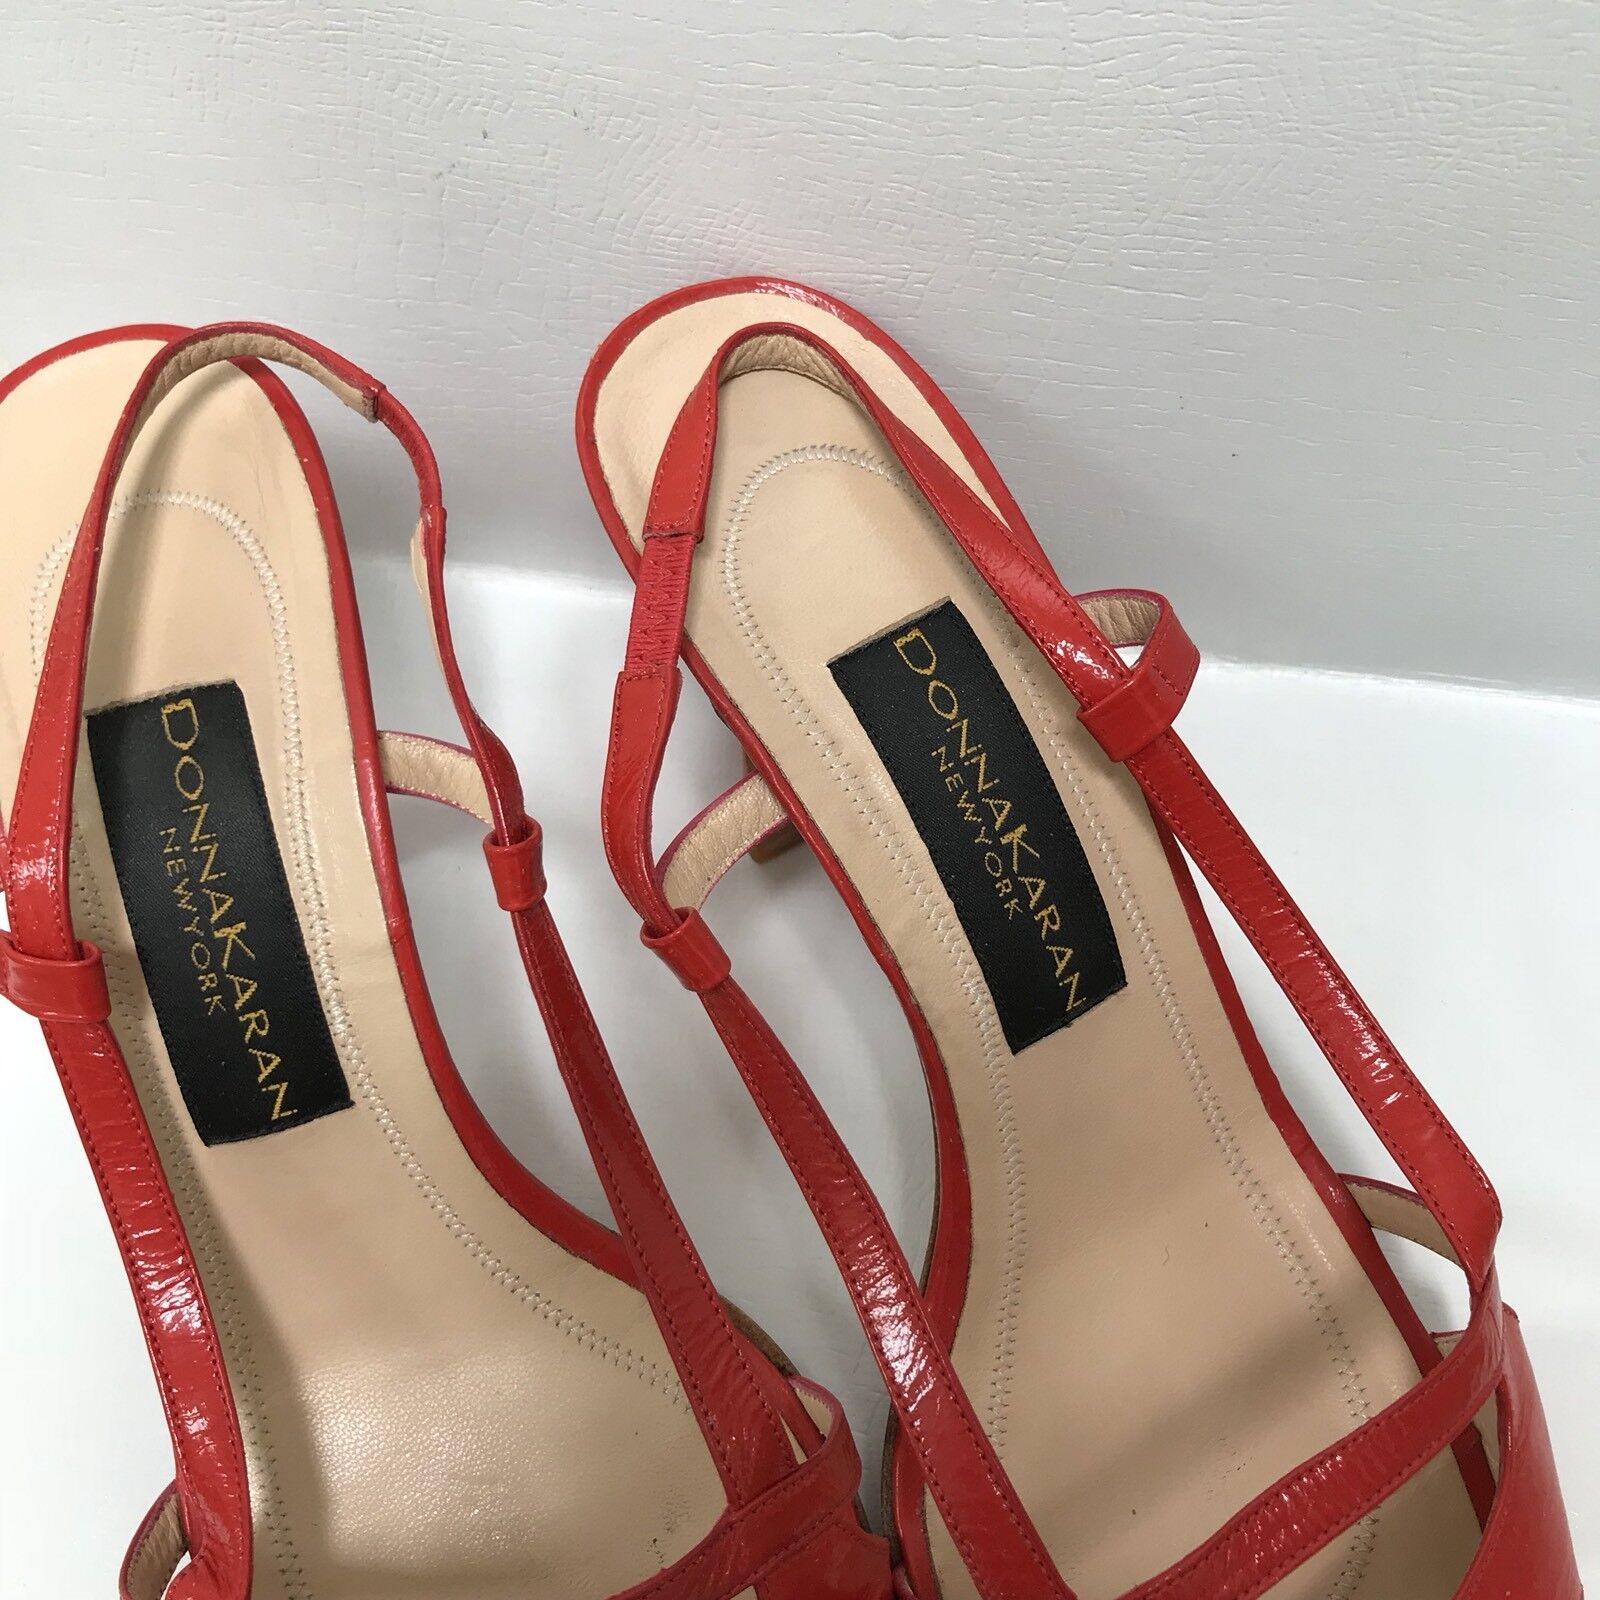 damen damen damen Karan rot Leather Slingbacks Open Toe 9.5B  b3a742